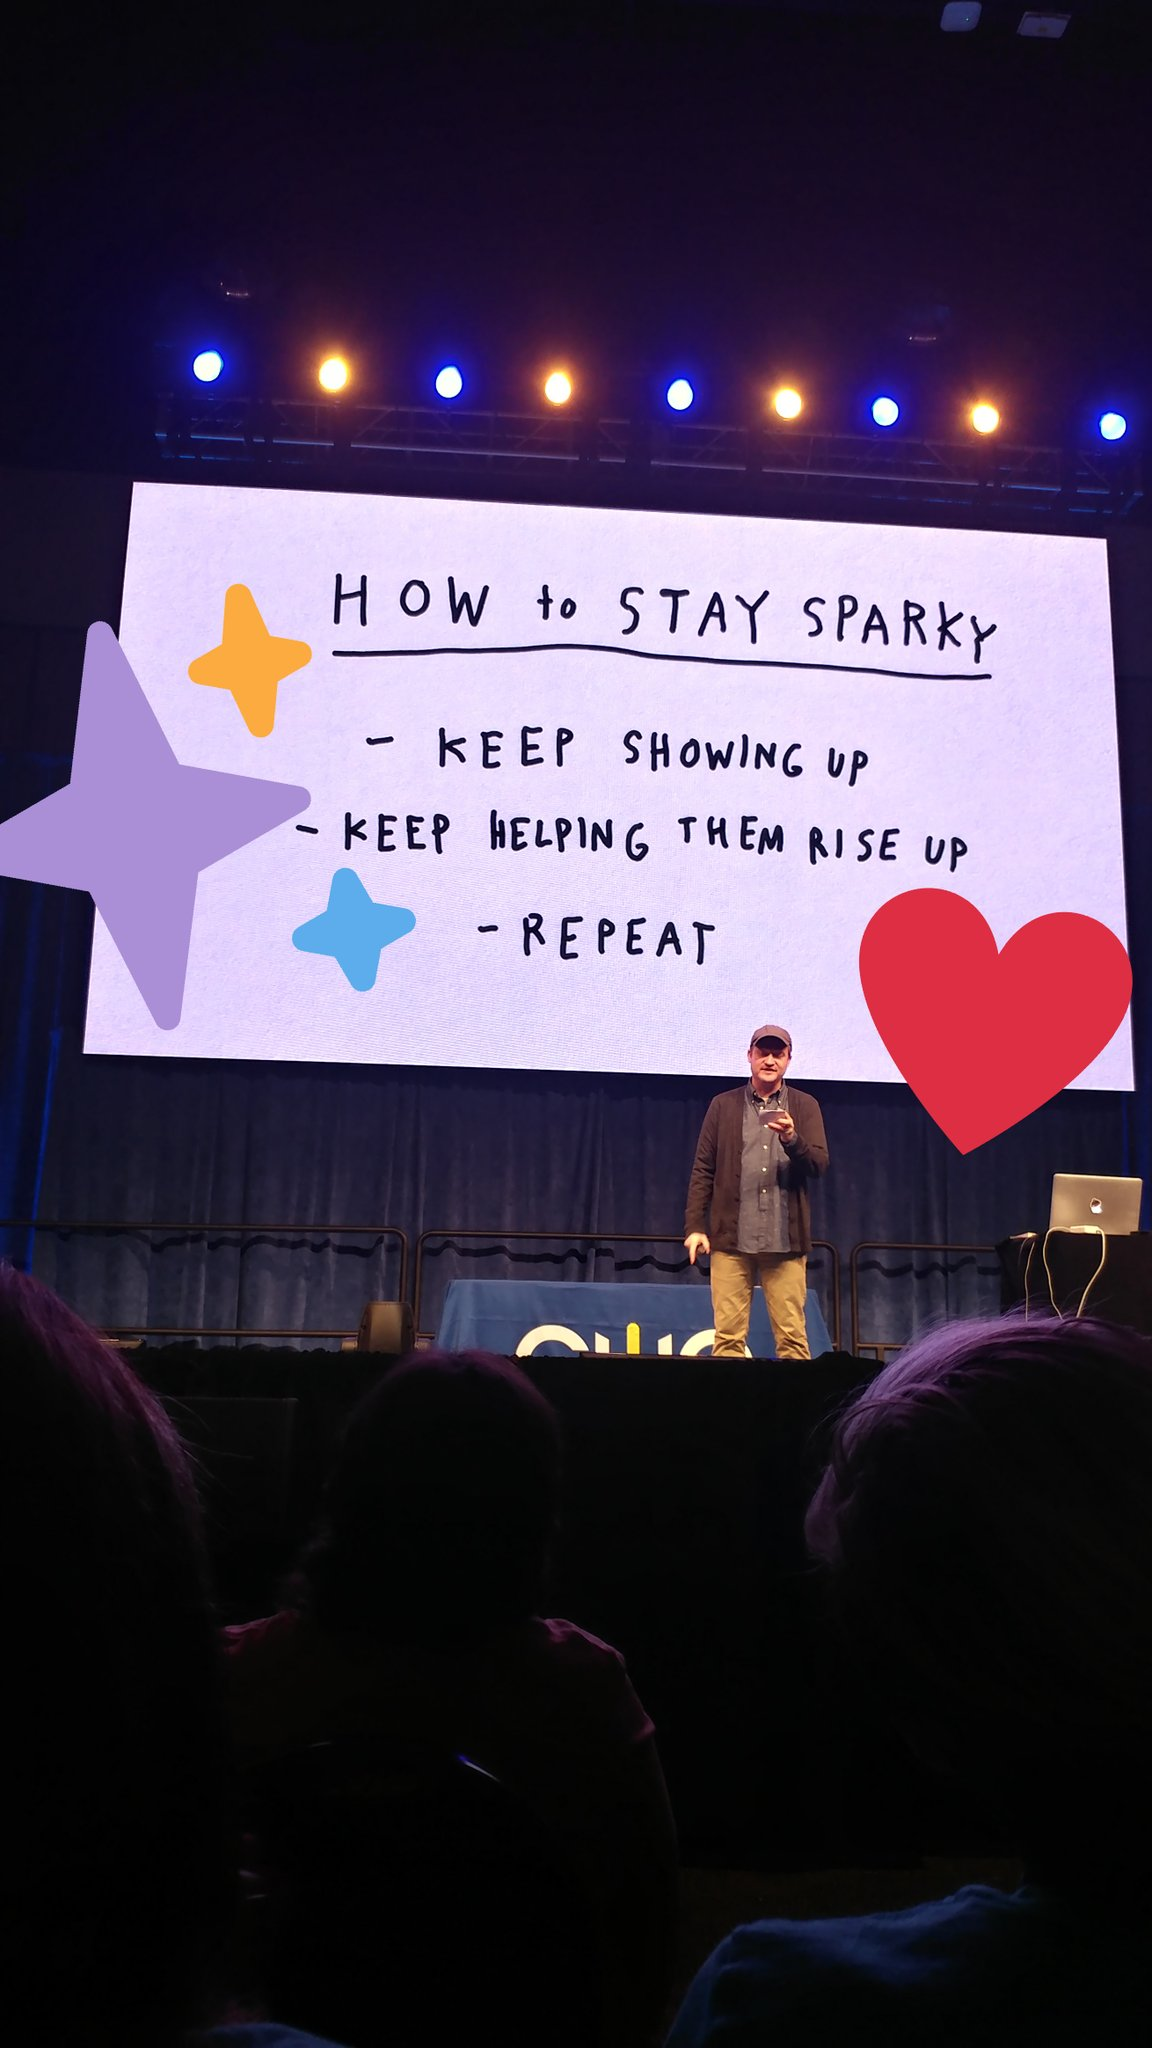 Thanks again for all the awesomeness @thebradmontague #staysparky #cue17 #beabettergrownup https://t.co/I31ZGReg5j